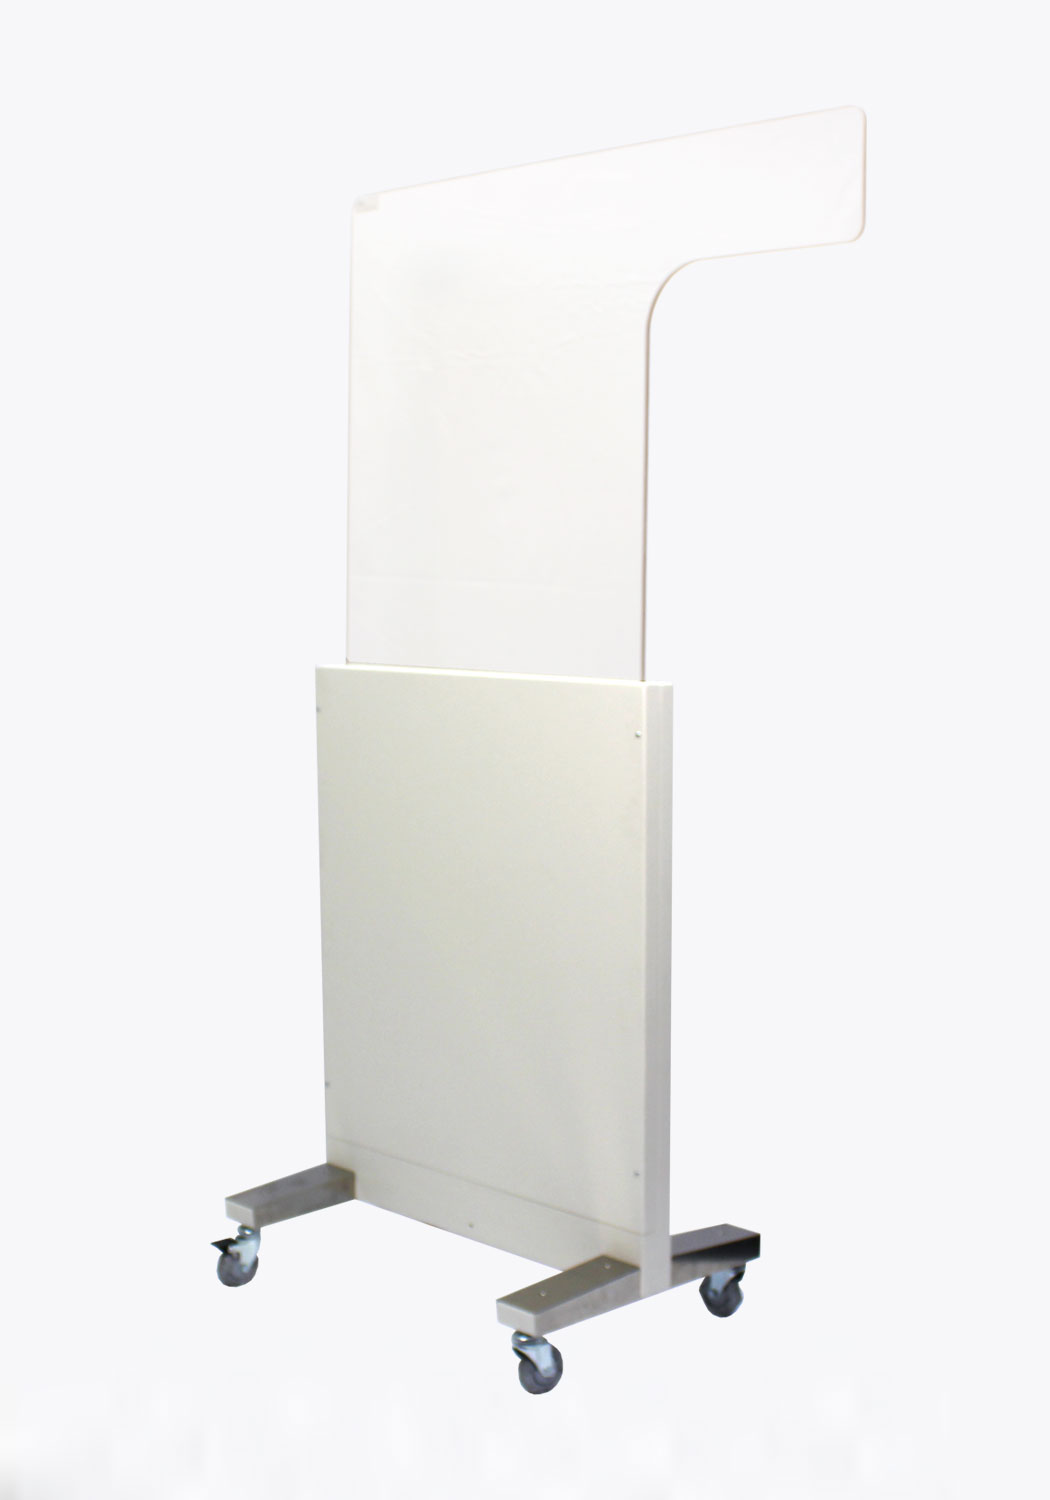 X-ray Mobile Barrier Adjustable Physician 076996